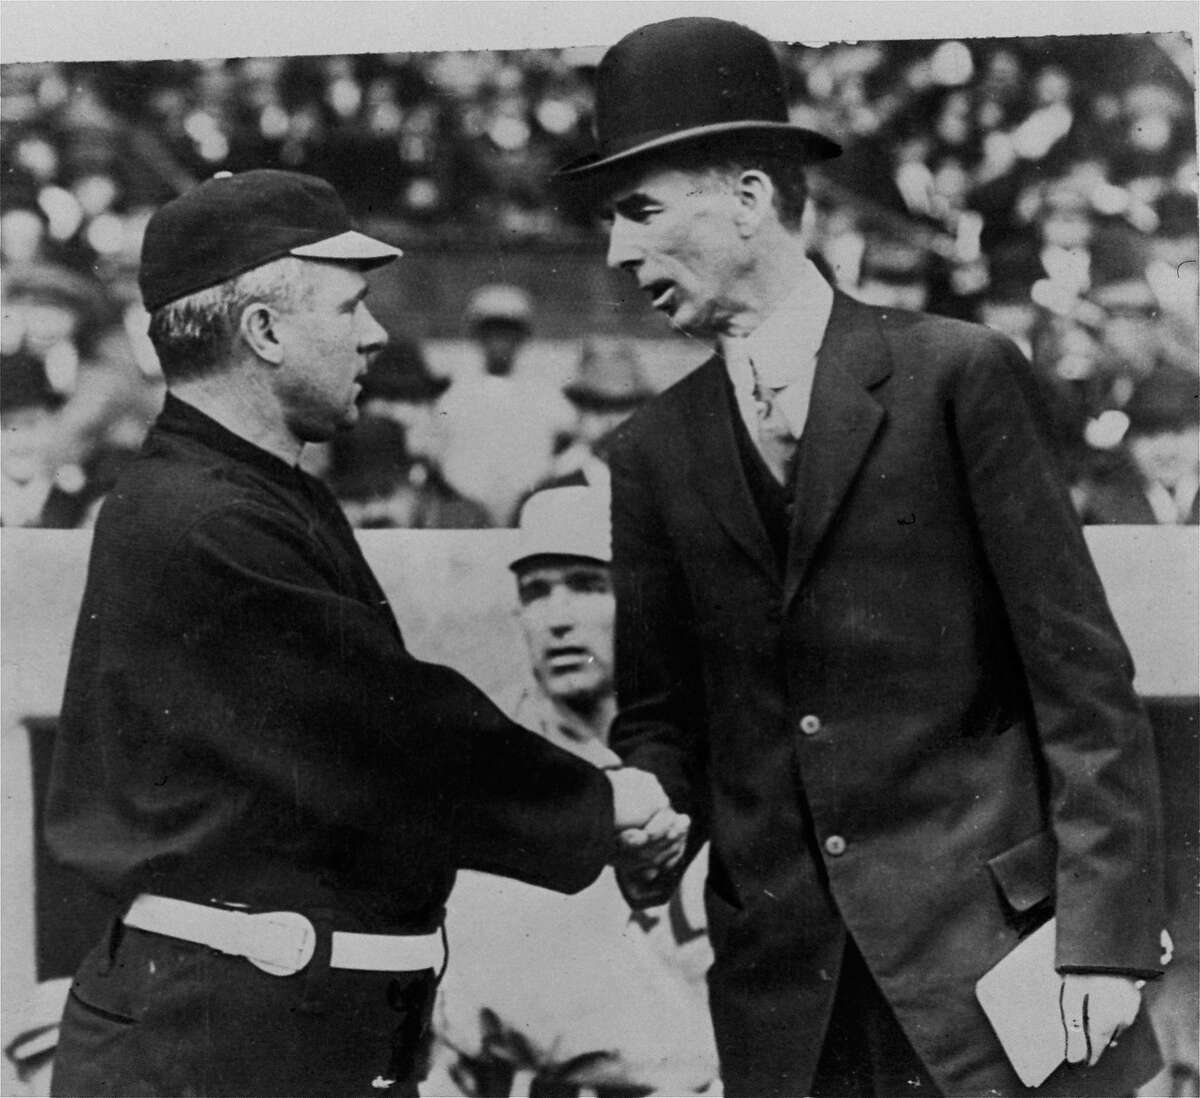 1911: Opposing managers Connie Mack, right, and John McGraw, at the opening game of the 1911 World Series, New York City, October 14, 1911. Mack's Philadelphia Athletics defeated McGraw's New York Giants in 6 games.